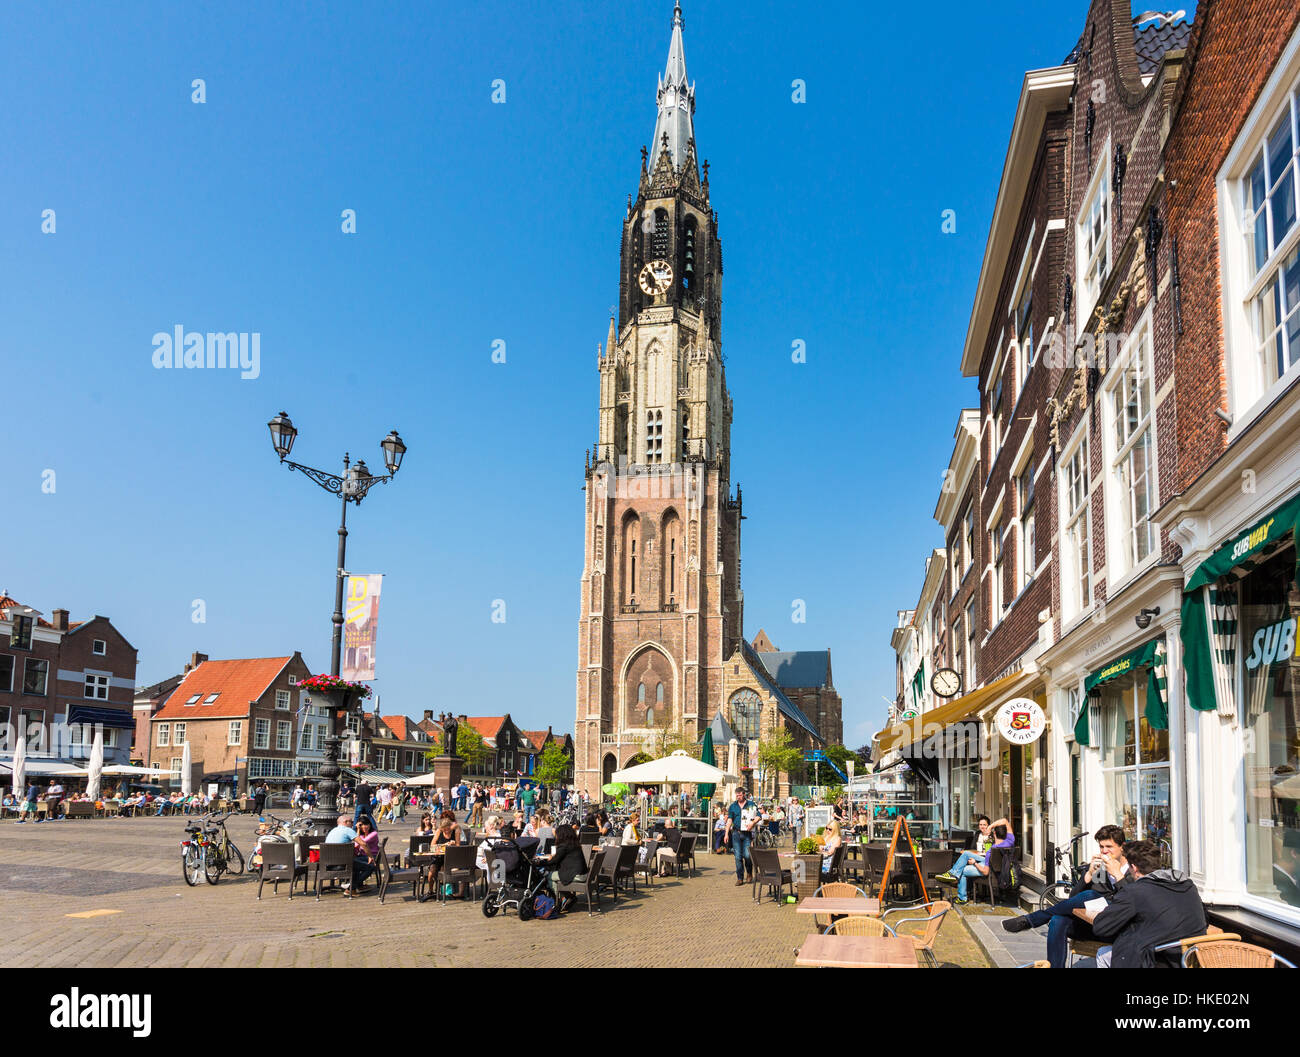 DELFT, THE NETHERLANDS - MAY 28, 2016: People enjoy a coffee on Delft old town main square in front of the tall - Stock Image